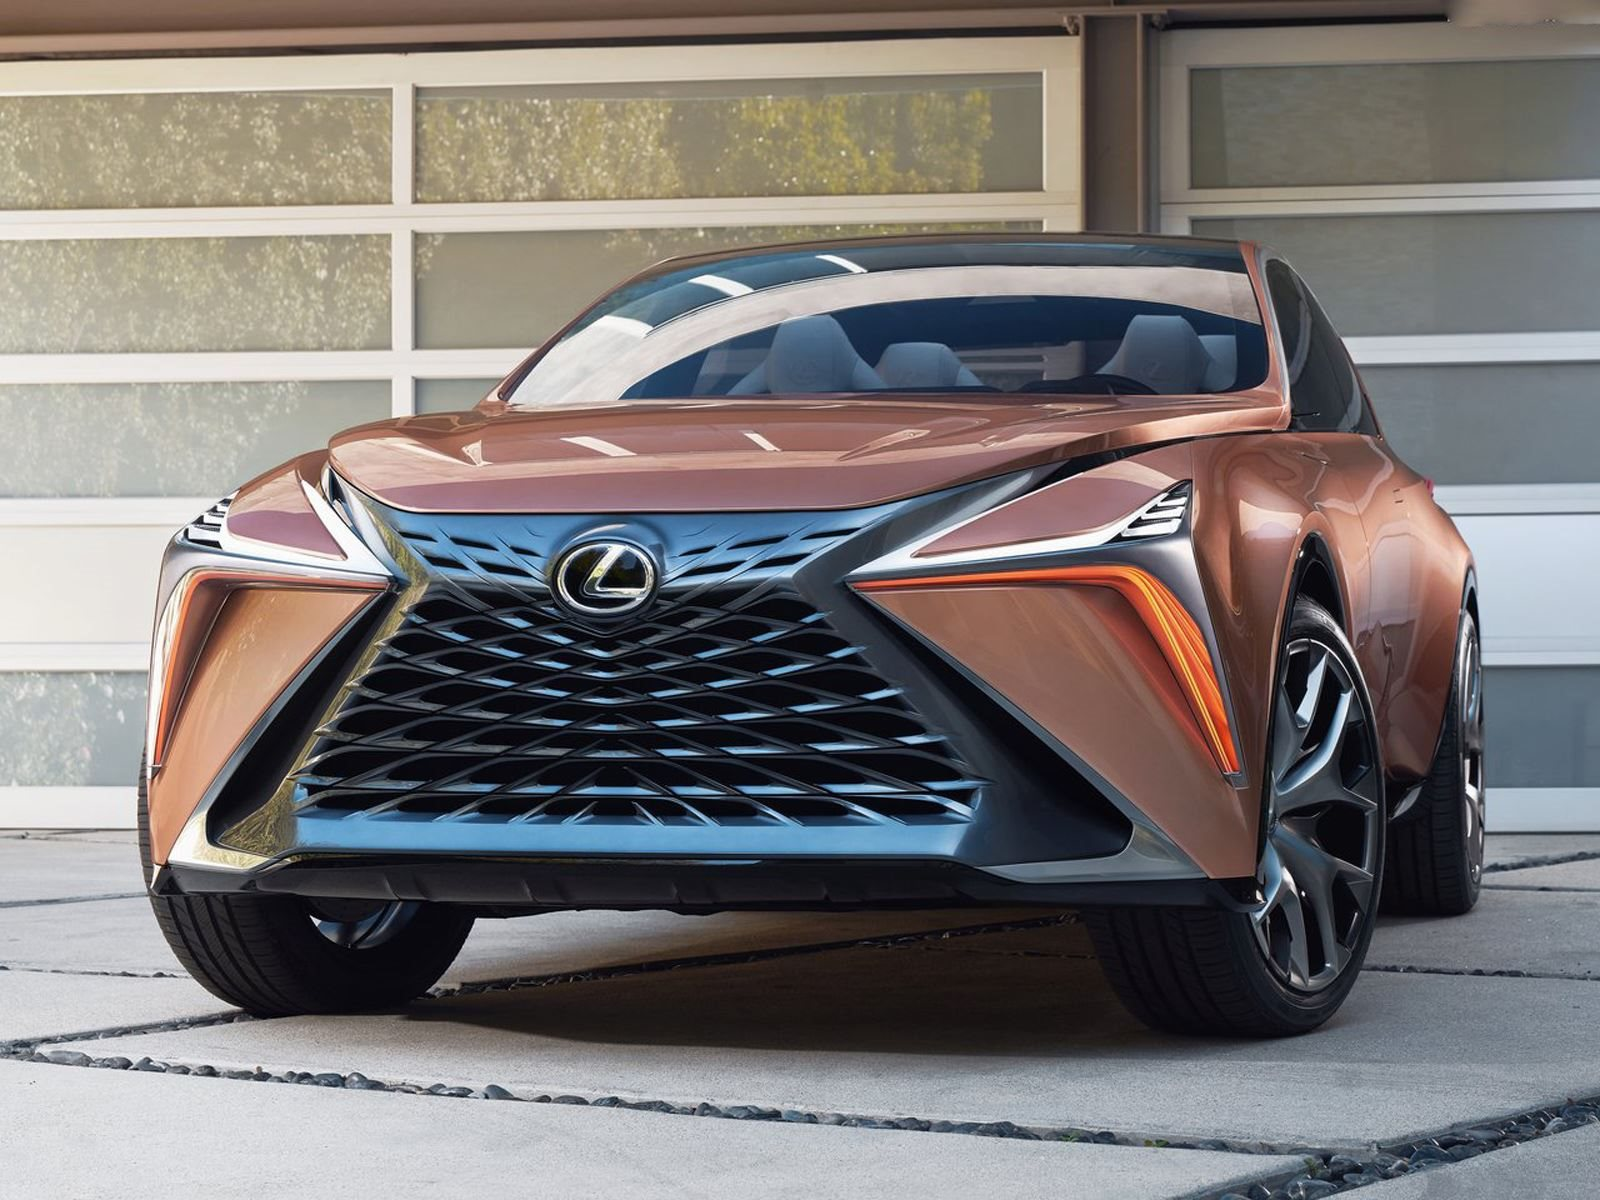 Old Lexus Owners Called To Complain About The New Radical Styling - CarBuzz